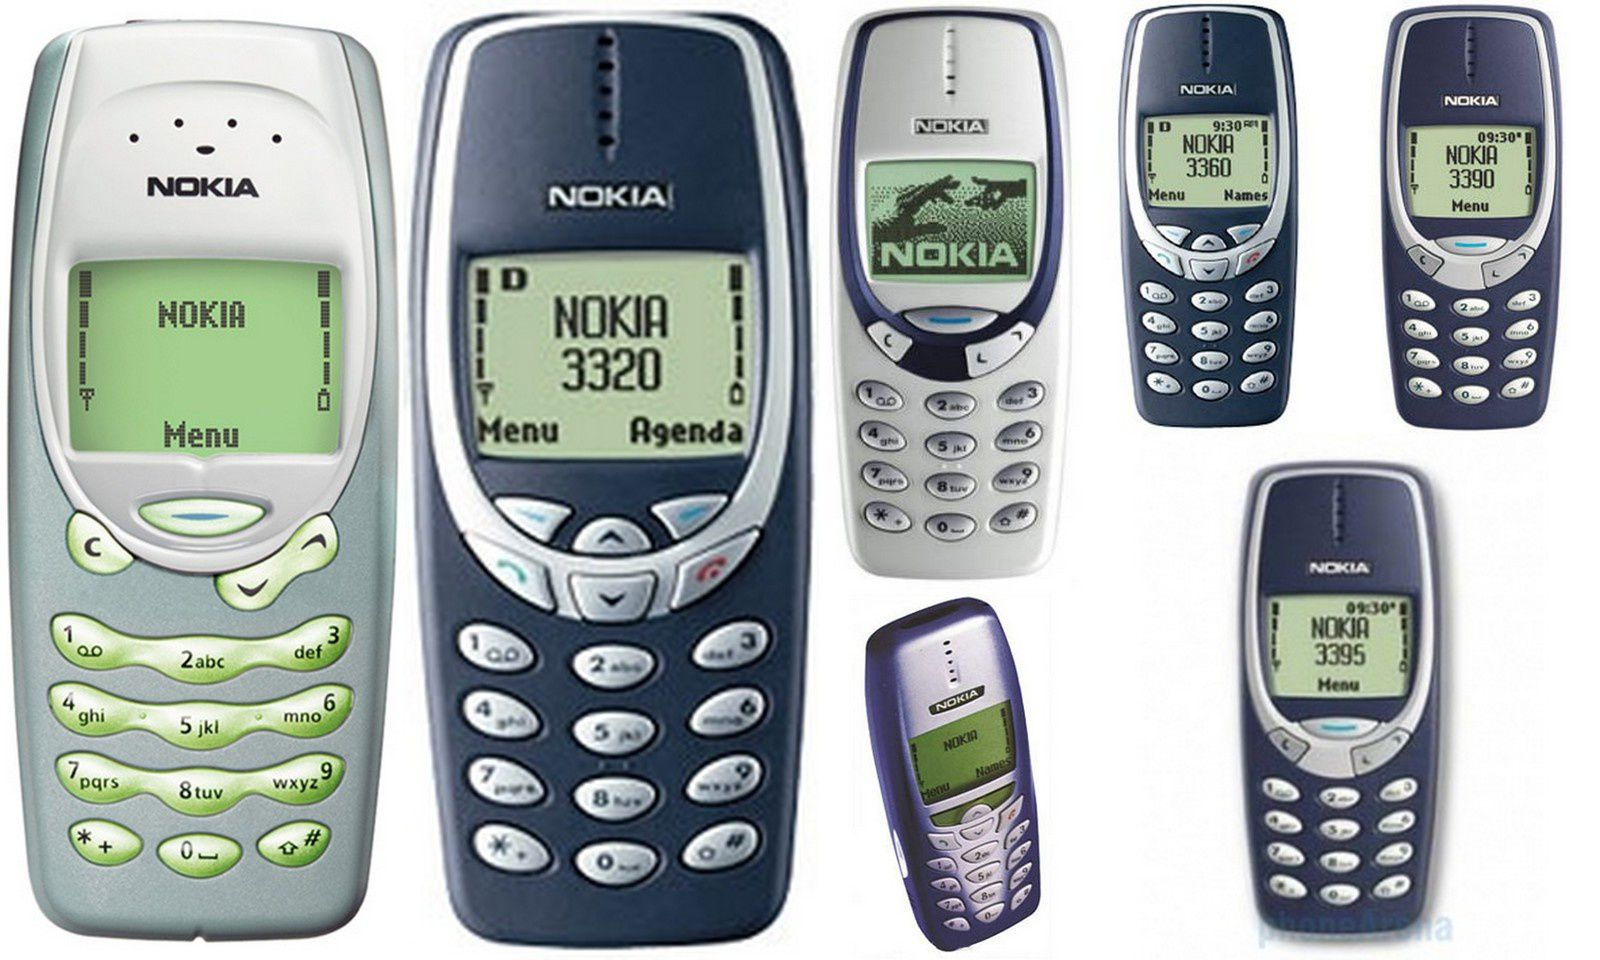 le t l phone portable nokia 3310 un exemple de robustesse histoire et volution des t l phones. Black Bedroom Furniture Sets. Home Design Ideas